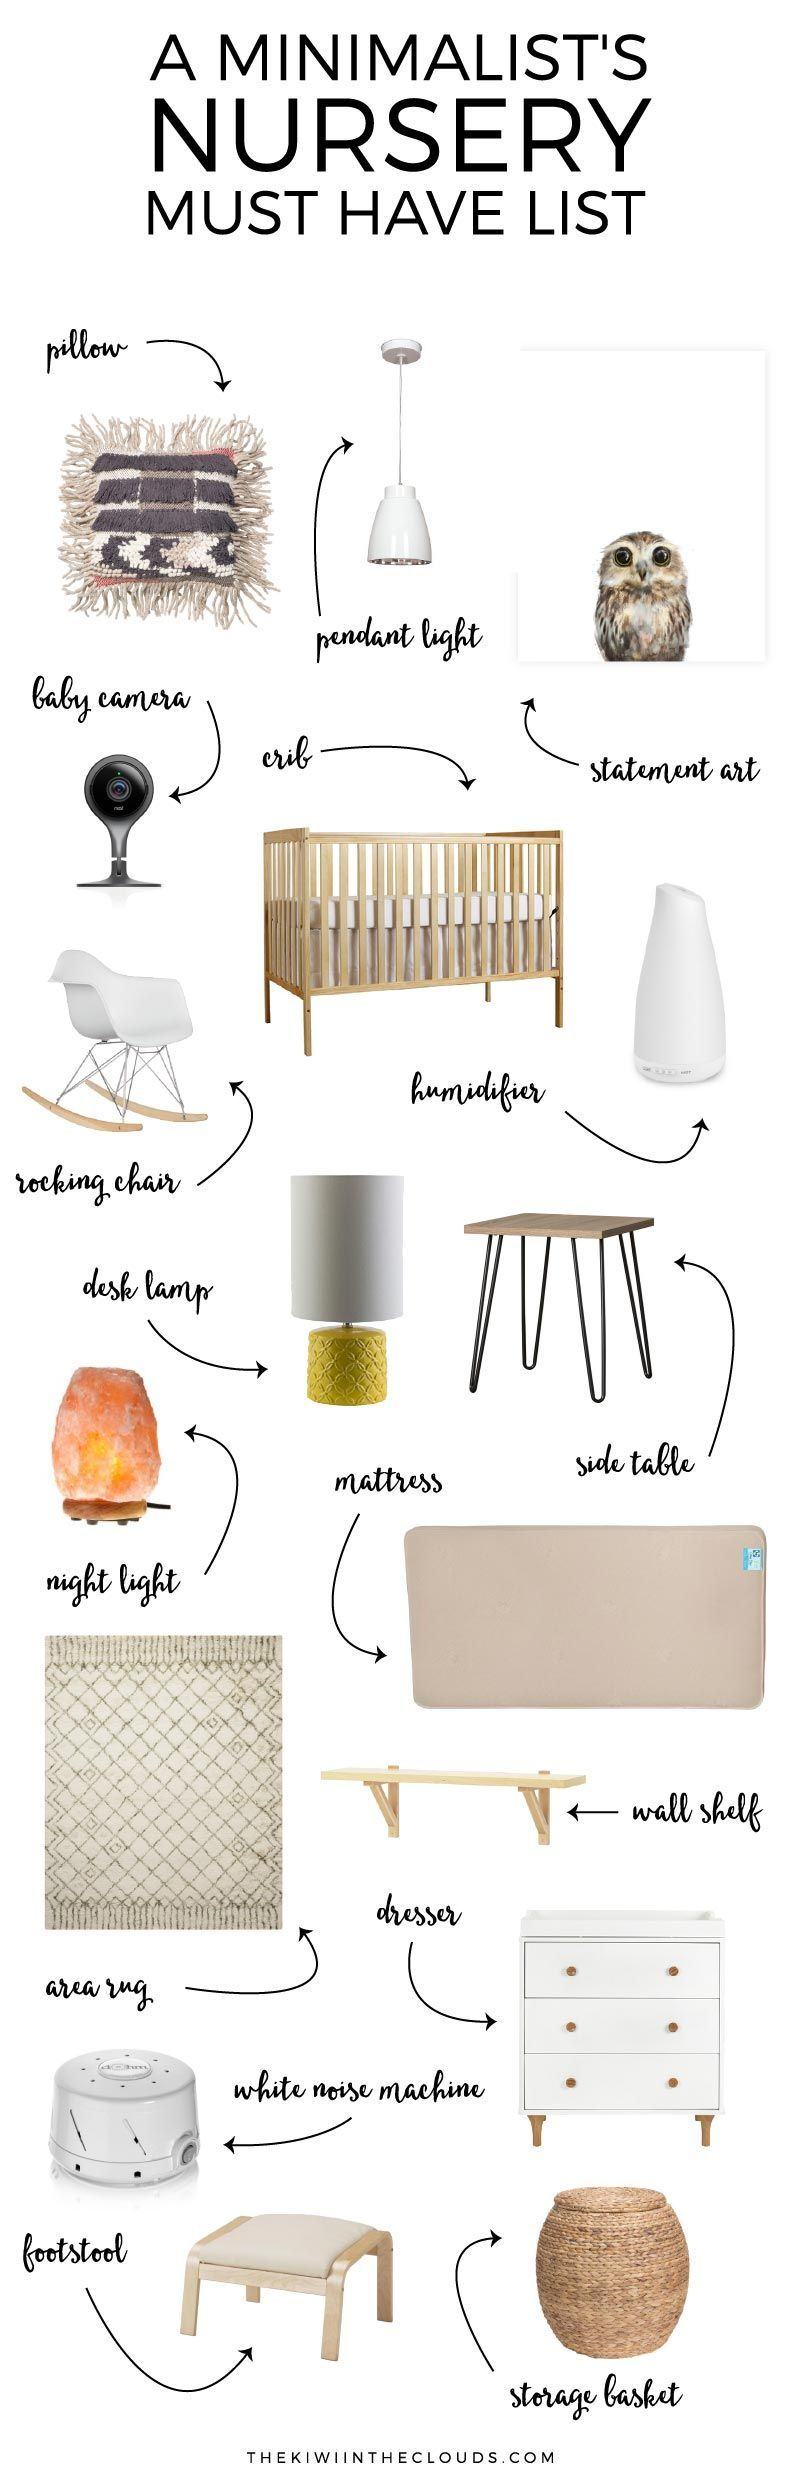 Essentials: A Minimalist Nursery This fabulous guide shows you how to use nursery essentials to create a minimalist nursery filled with style and function. And bonus: it comes with a FREE nursery planning checklist! Click through for all the source details and to download your free checklist.This fabulous guide shows you how to use nursery esse...